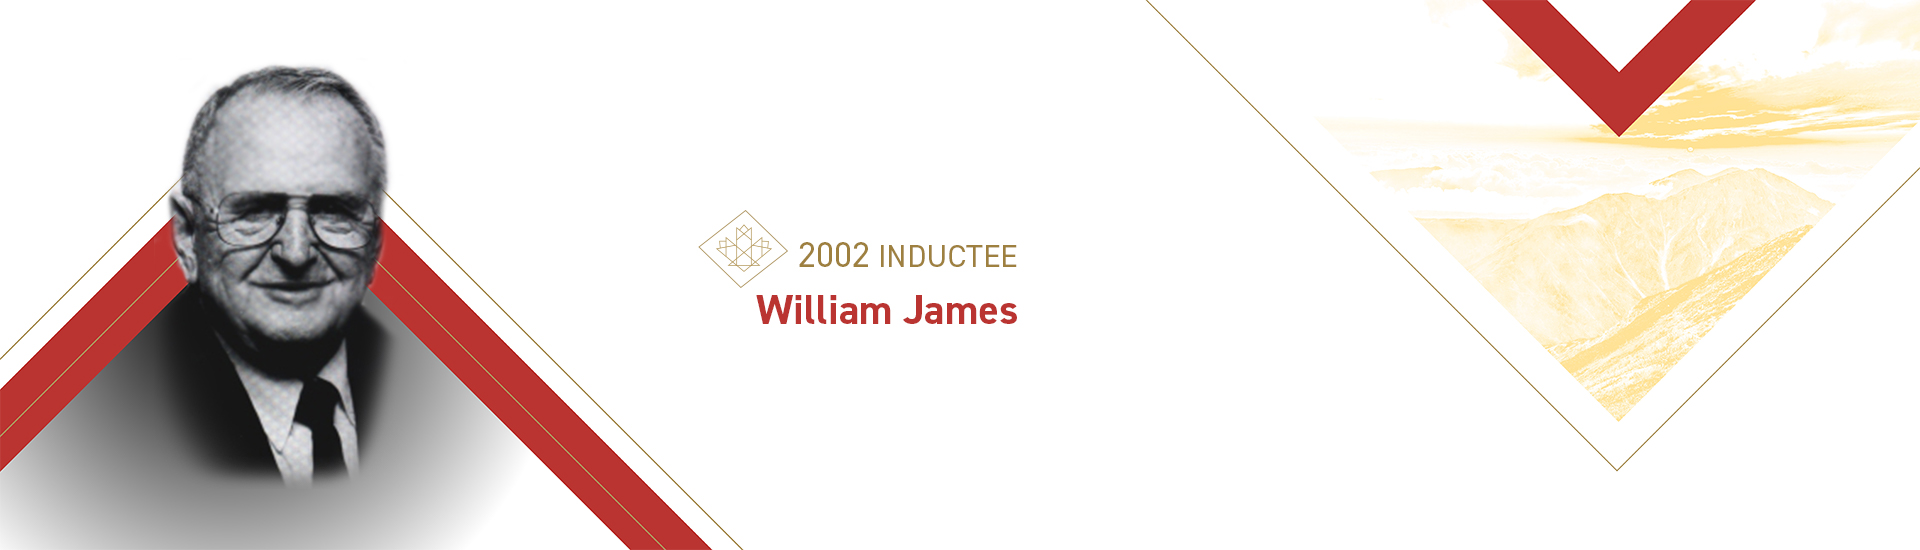 William James (b. 1929)